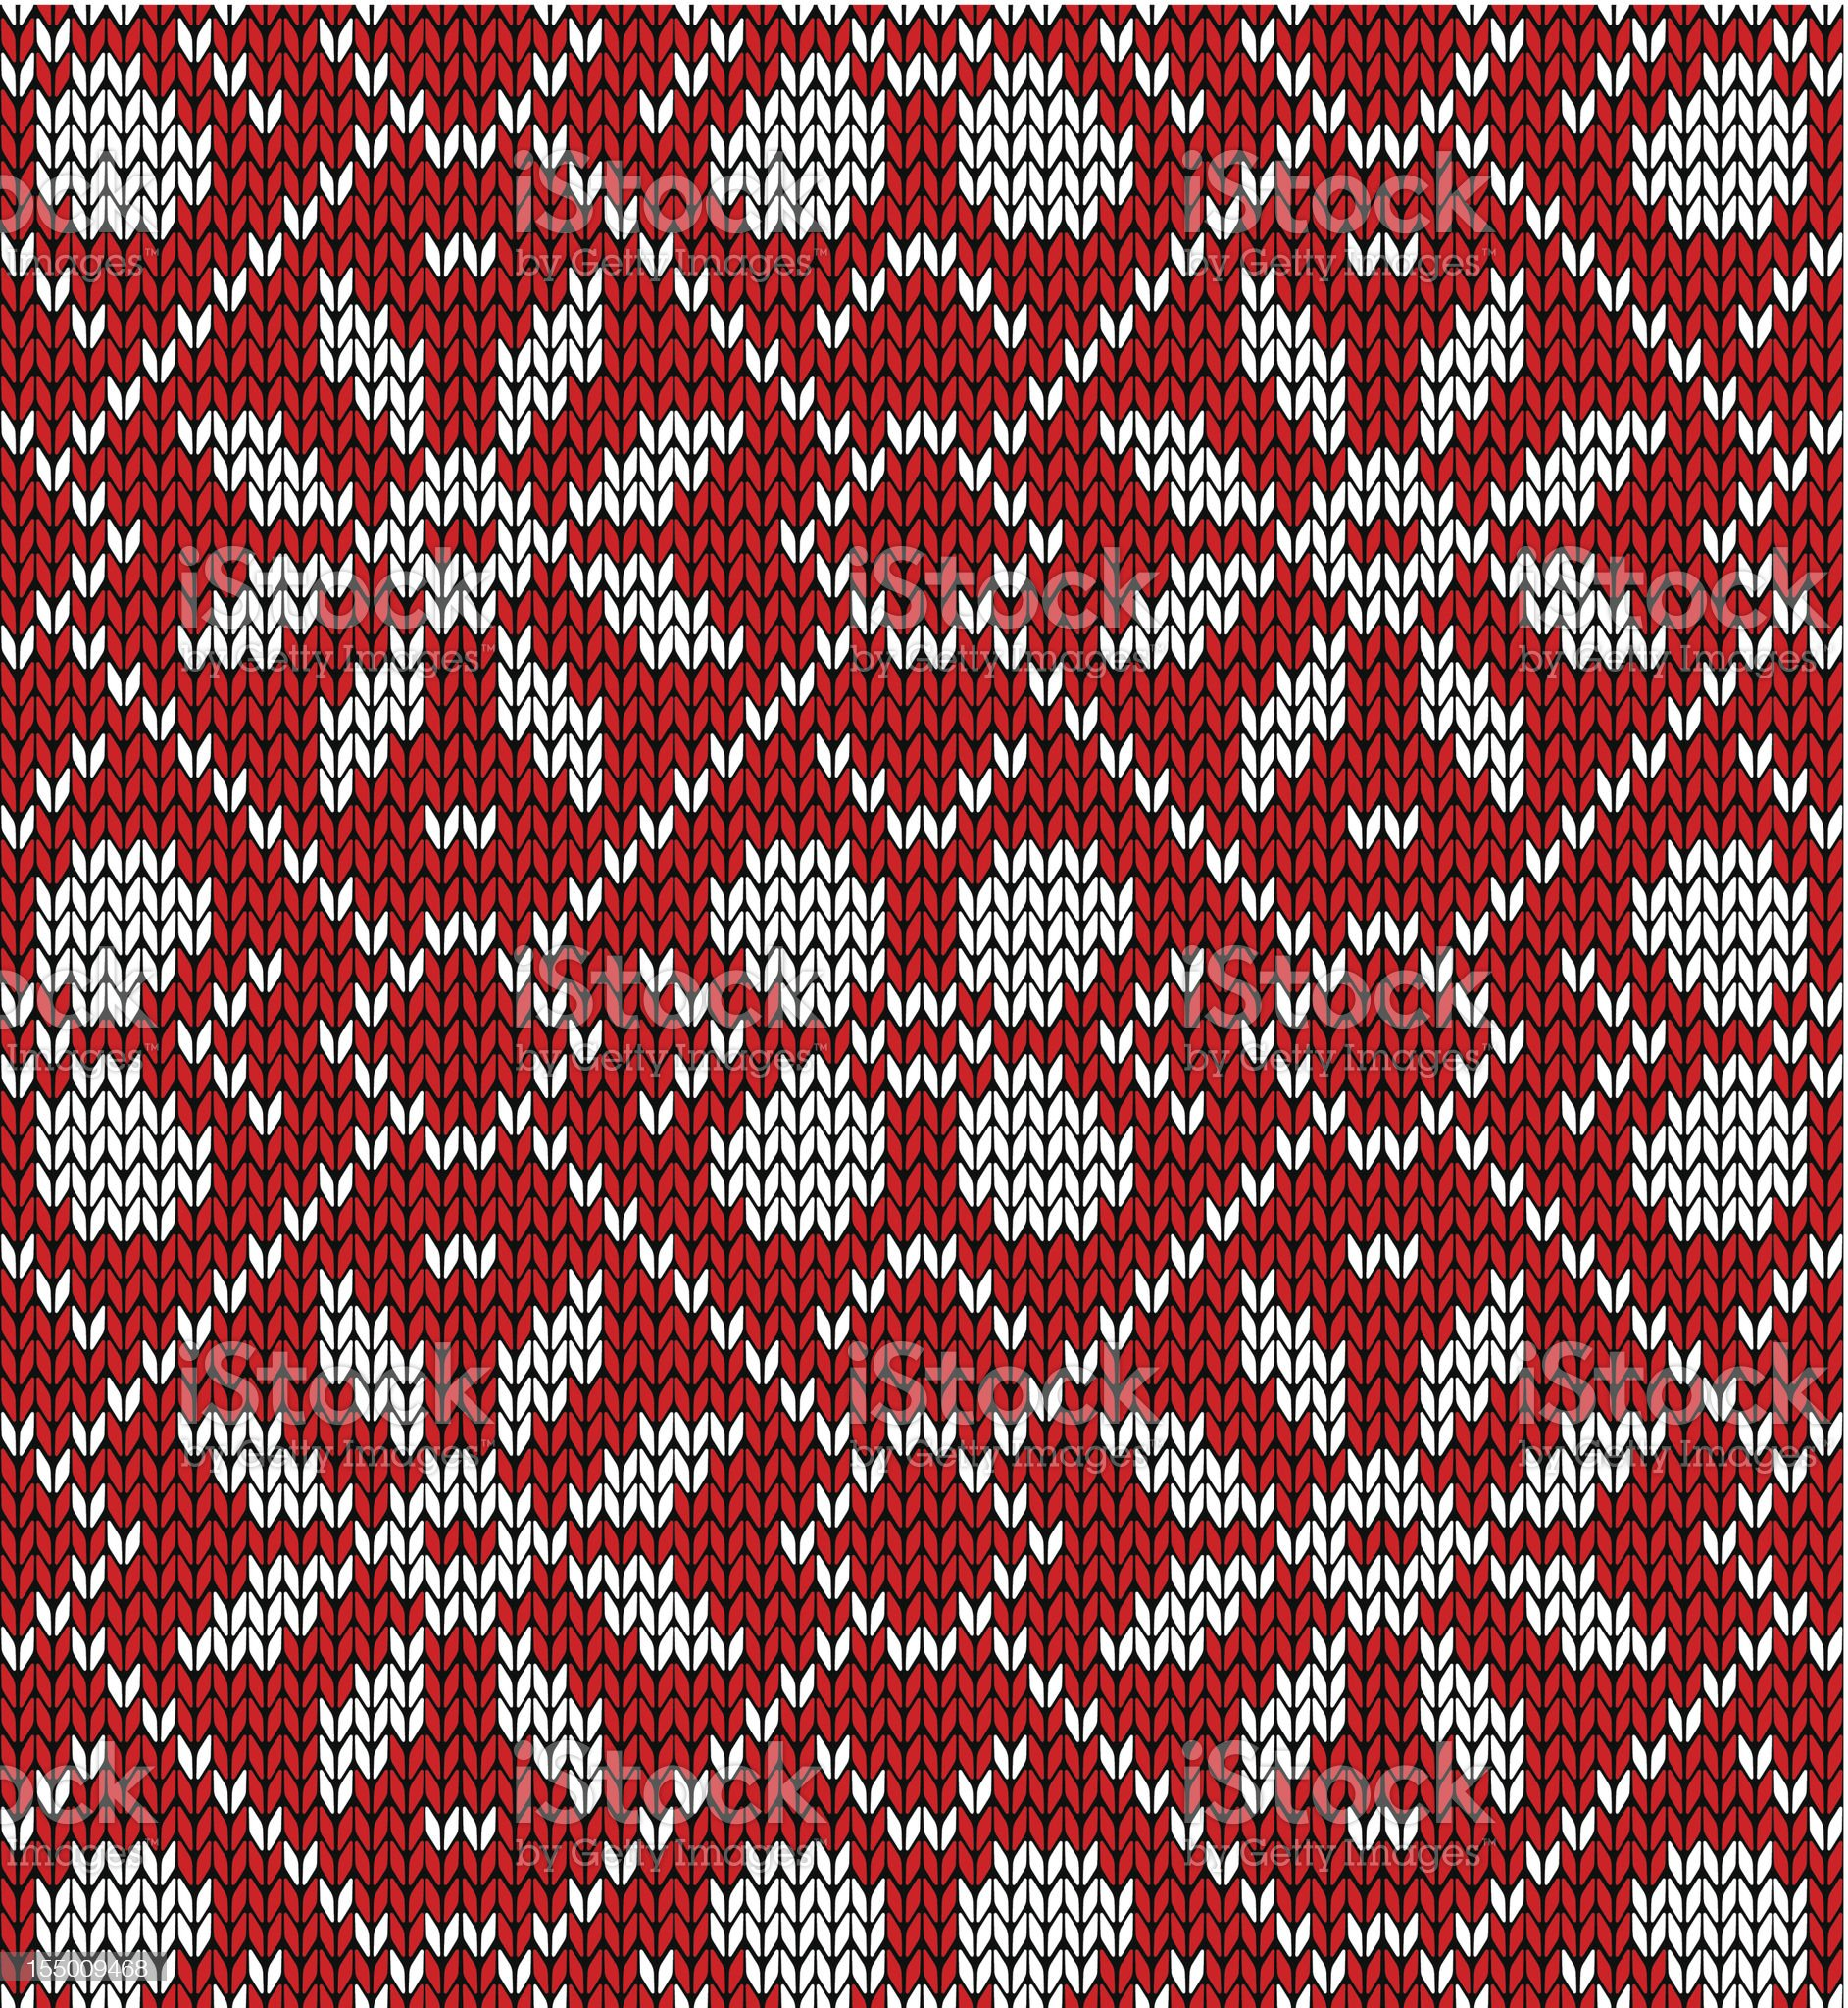 Christmas knitting pattern royalty-free stock vector art